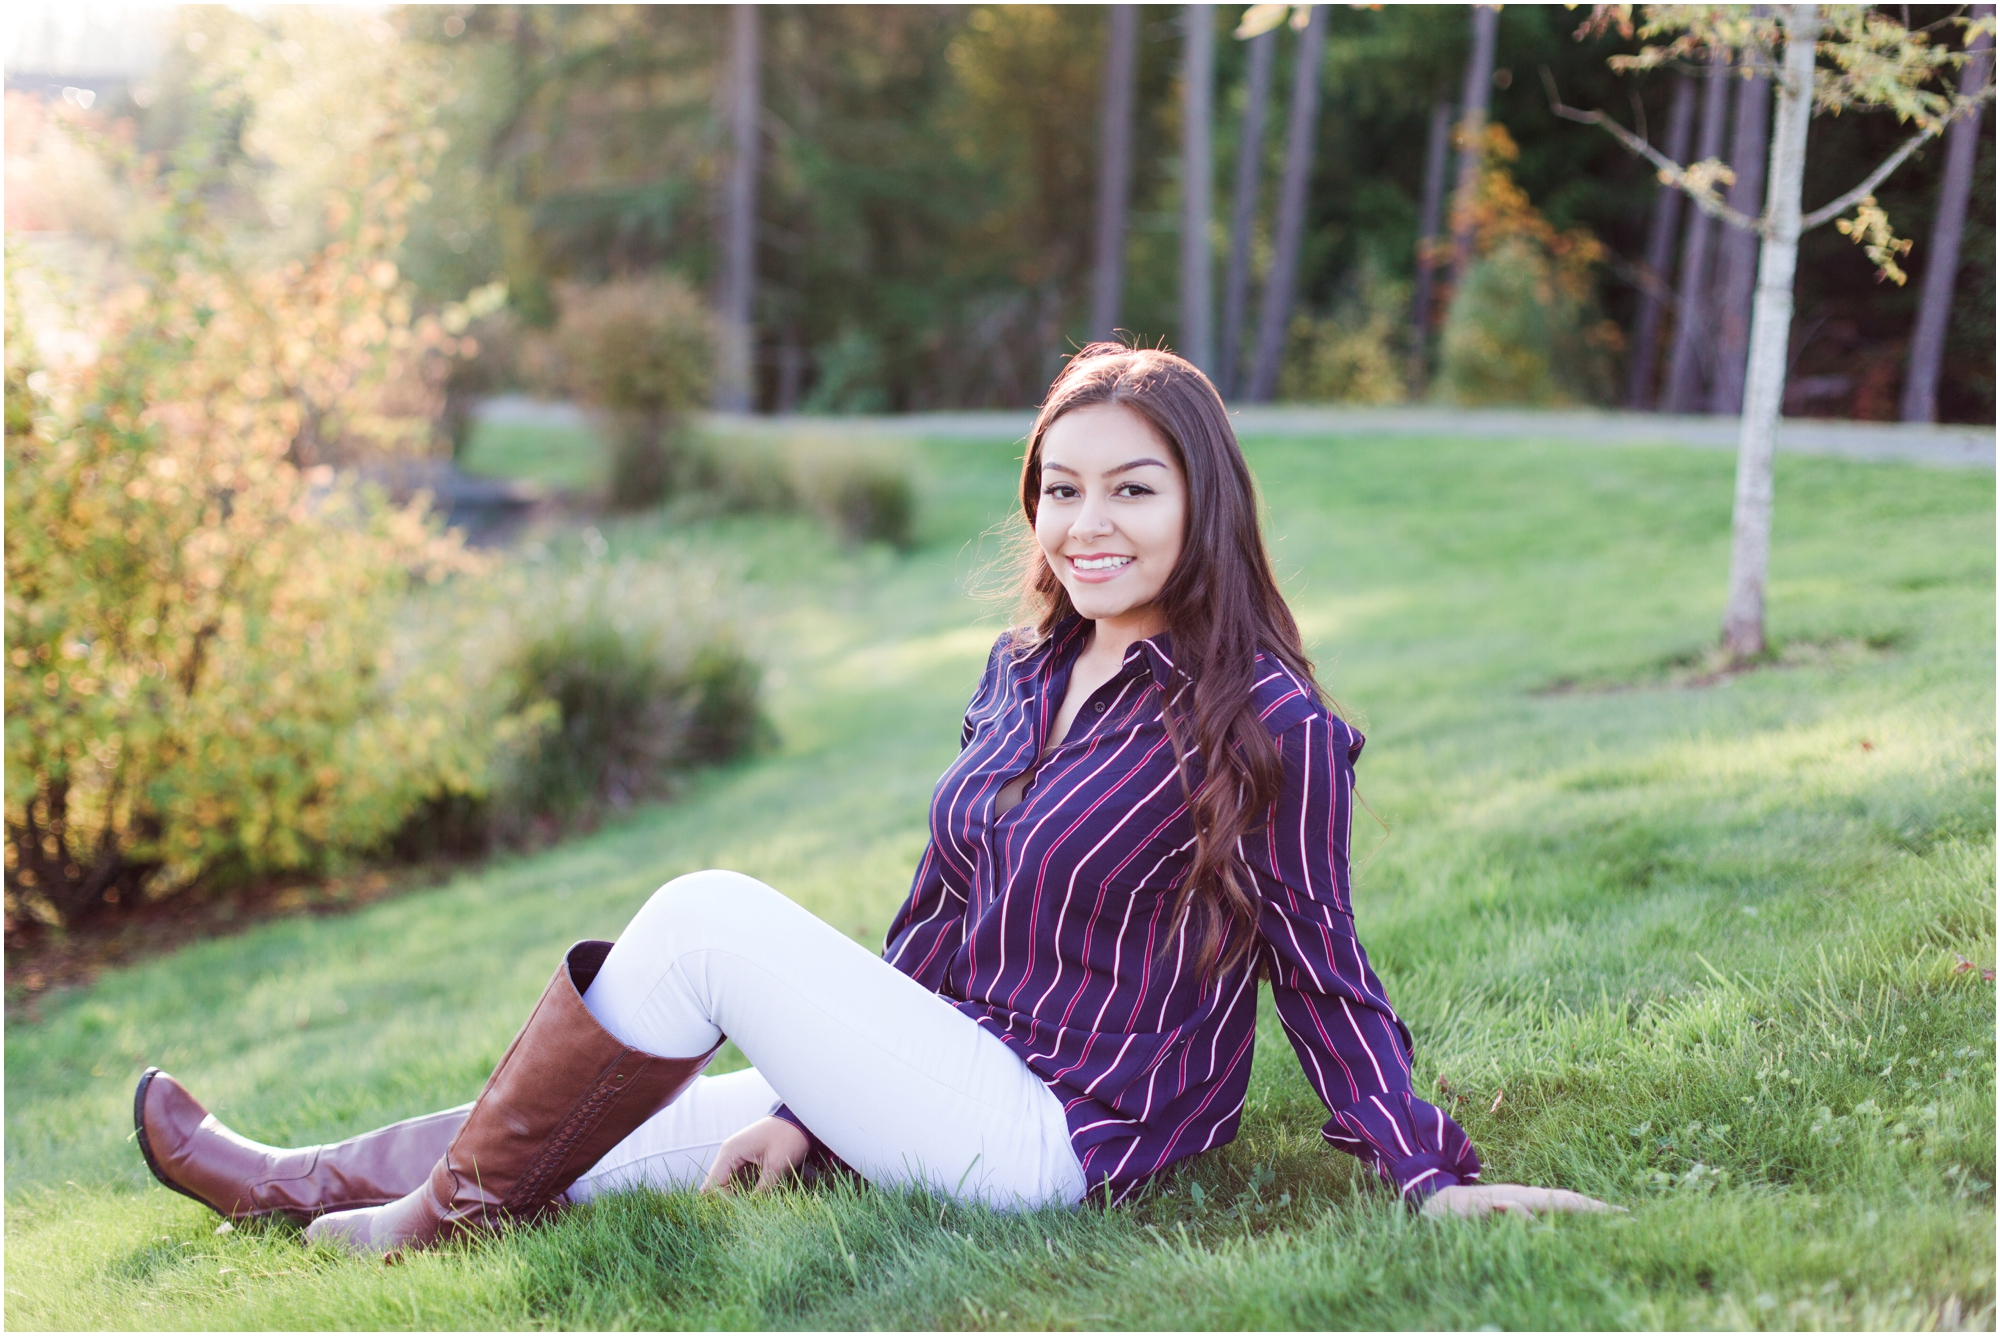 High School Senior portriats by Briana Calderon Photography based in the Greater Seattle & Tacoma, WA_0941.jpg